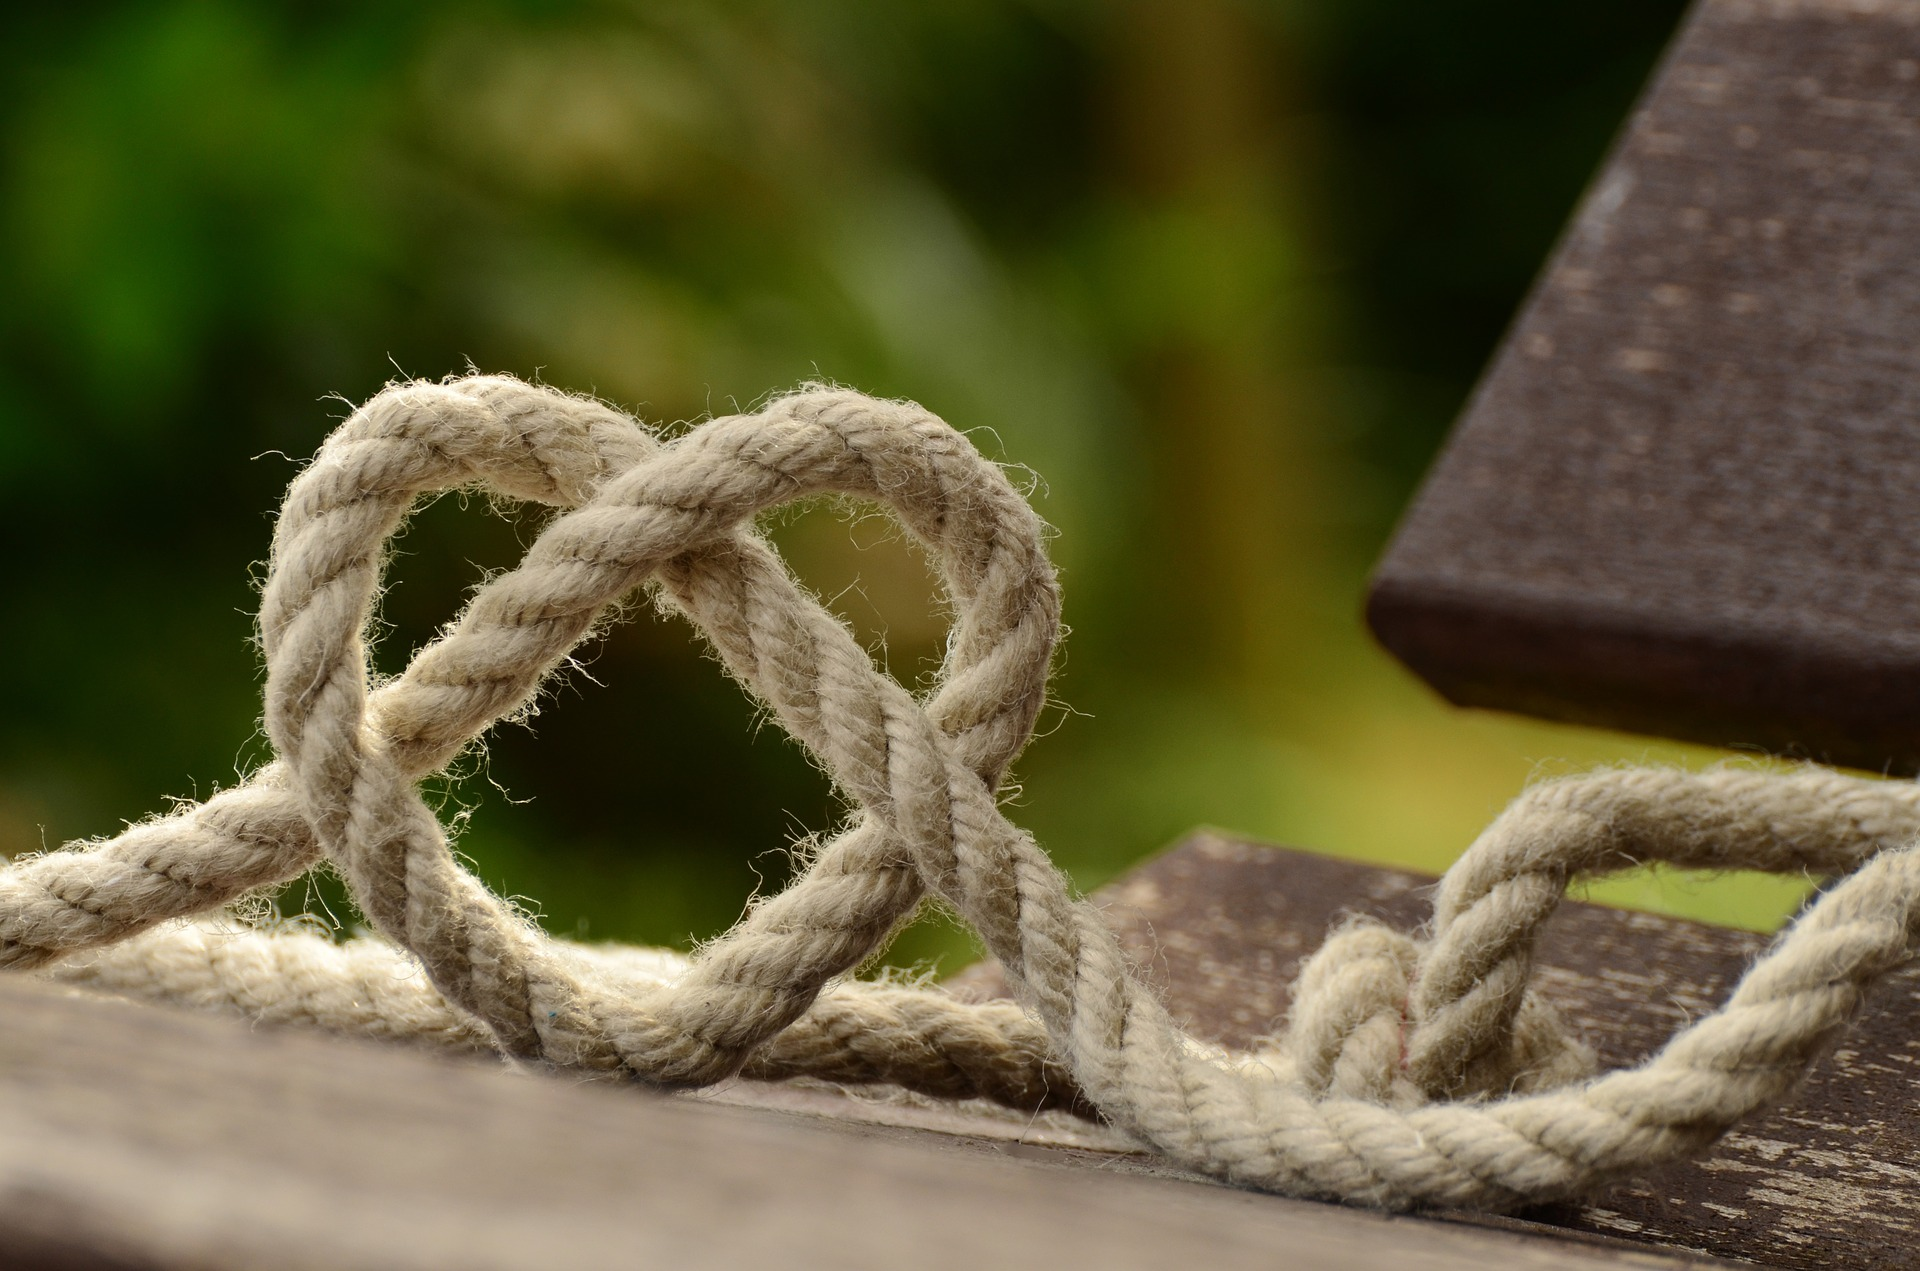 Know the most common knots - they can be a life saver